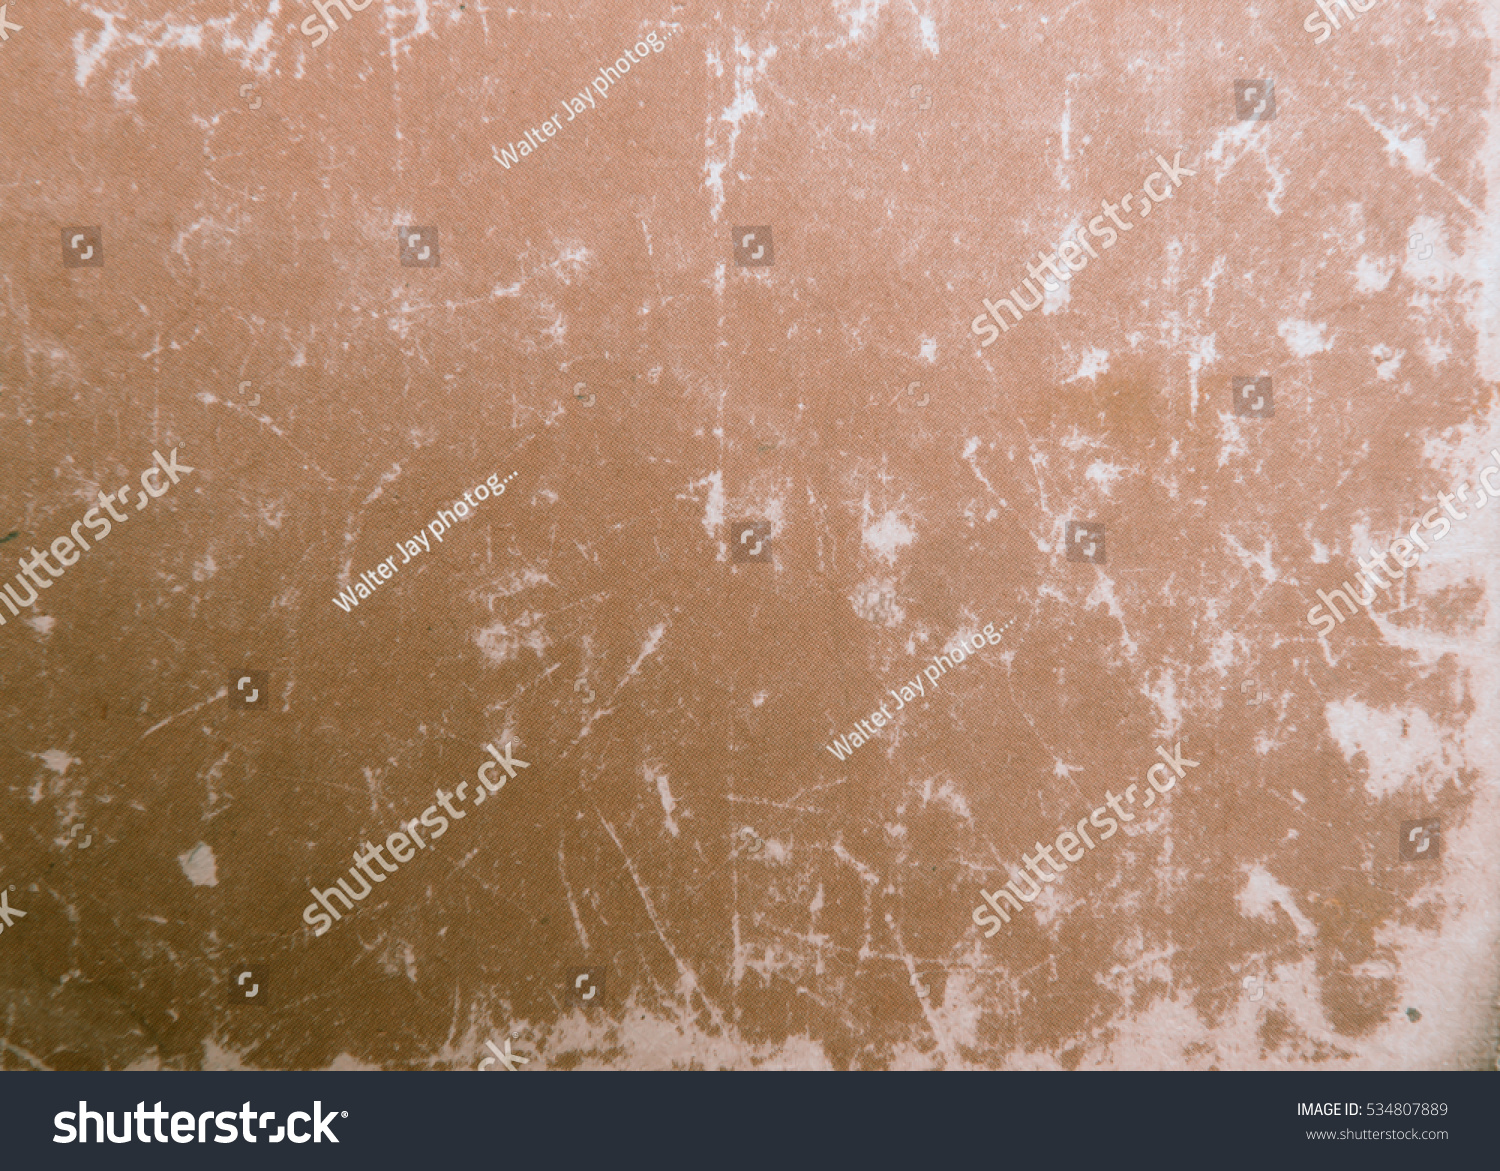 Book Cover Texture Image : Old book cover background texture stock photo